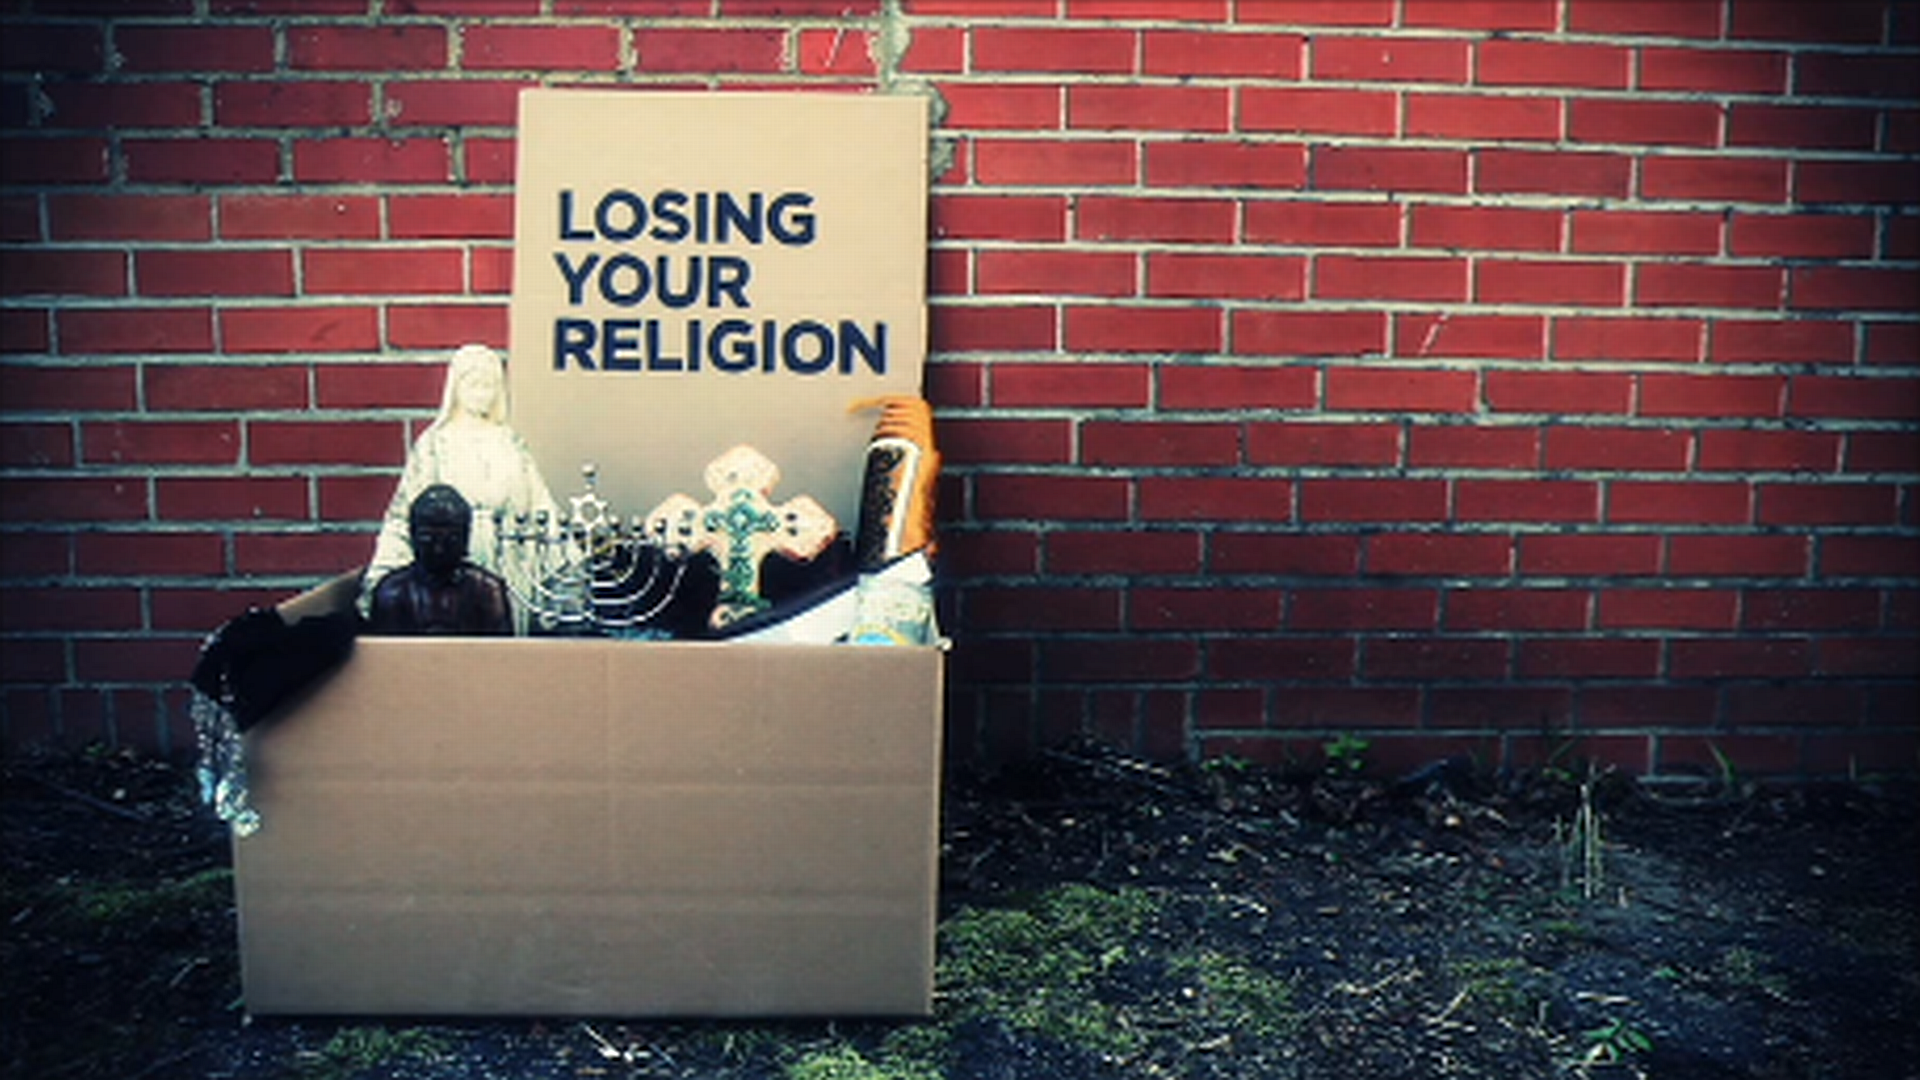 - Losing Your Religion 2: The Most Important ThingOctober 28, 2019Speaker: Jim Dunn